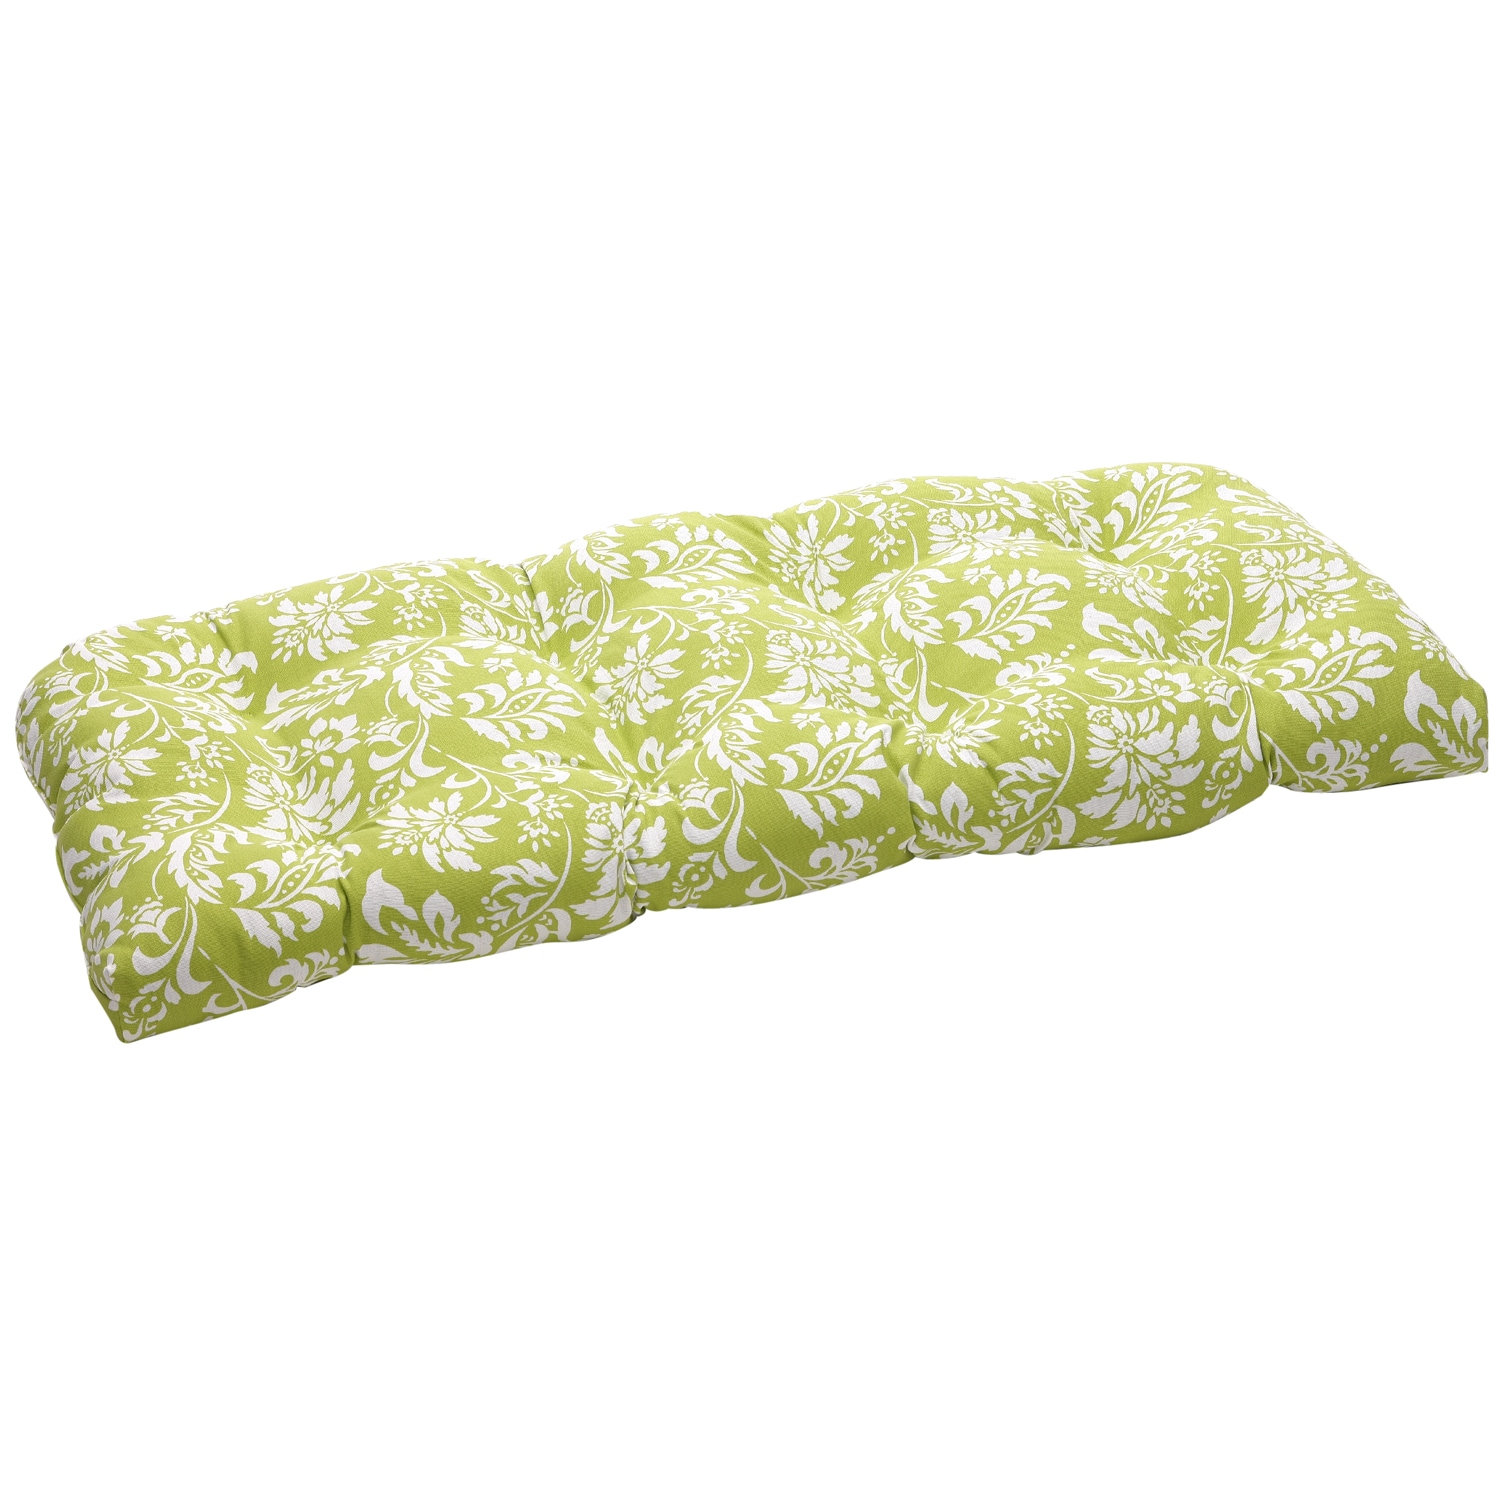 Green/White Floral Outdoor Wicker Loveseat Cushion